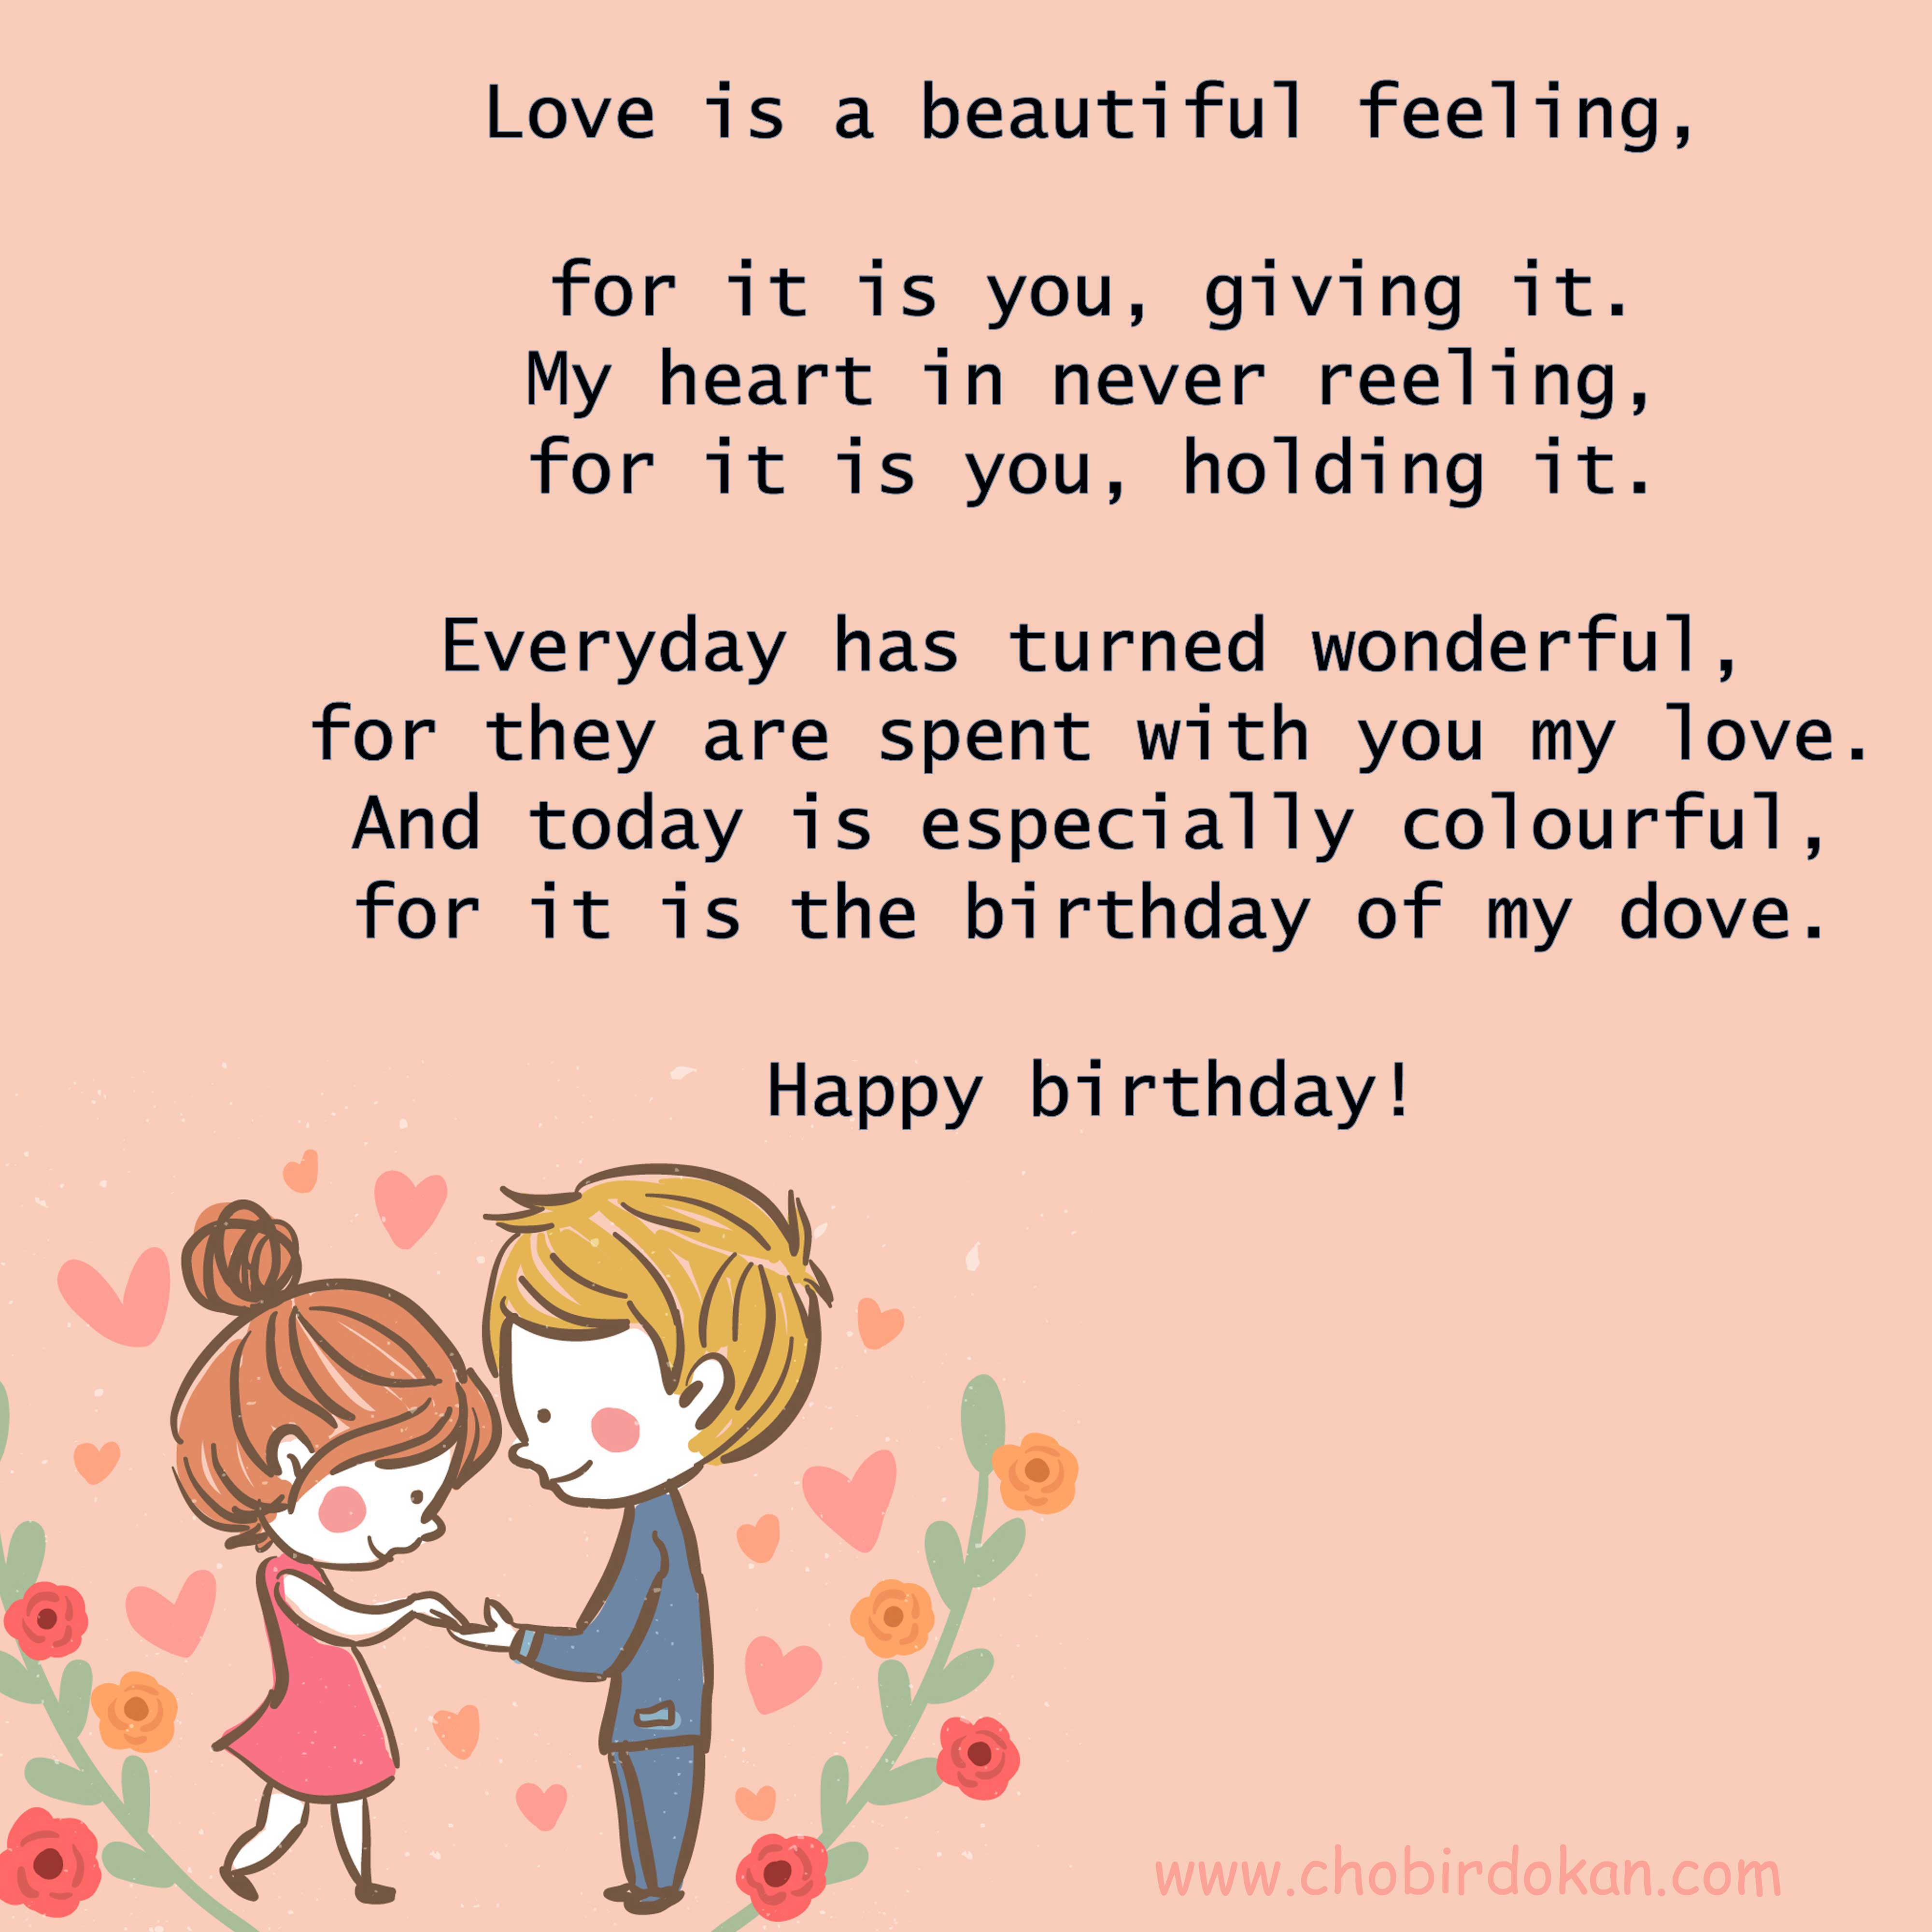 20 Heart Touching Birthday Wishes For Friend: Happy Birthday Poems For Him- Cute Poetry For Boyfriend Or